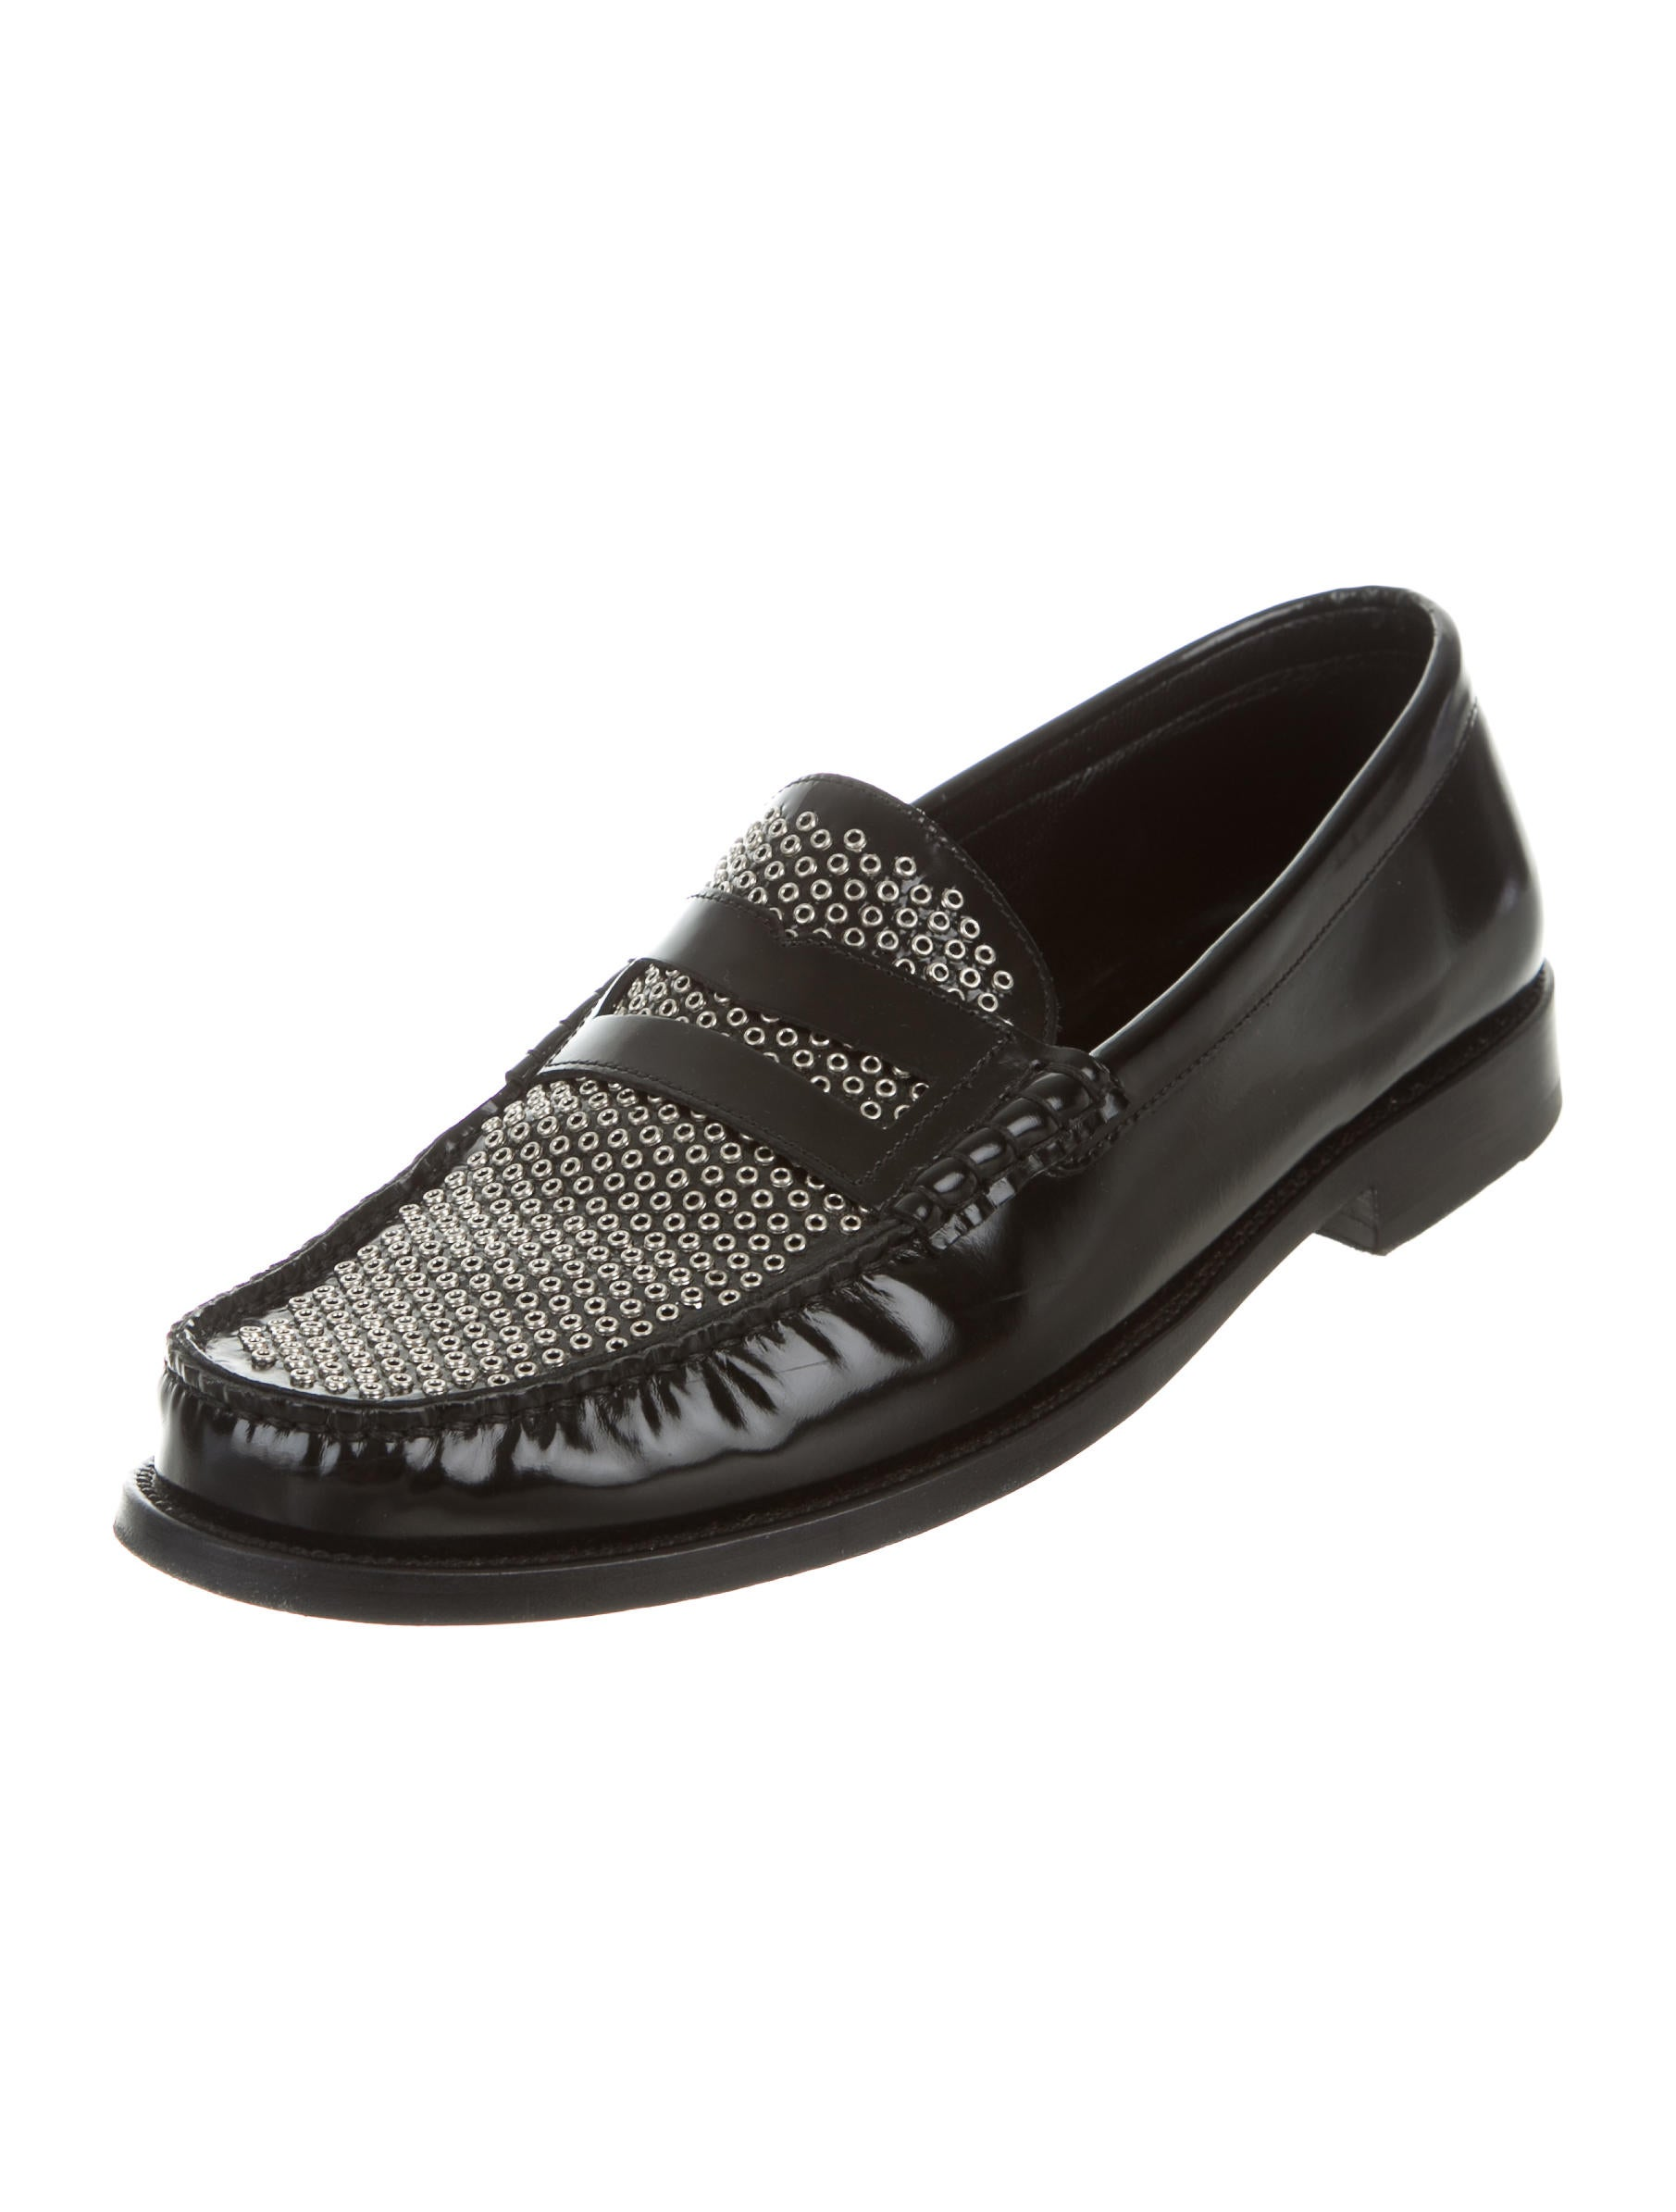 Sep 14,  · Even casual days can be glamorous when you wear these high-fashion loafers. Edgy metal studs give the classic slip-on design a fashionable edge. With a flexible, lightweight rubber sole and foam-padded arch support, you'll make going to the grocery store a stylishly comfortable event.5/5(4).